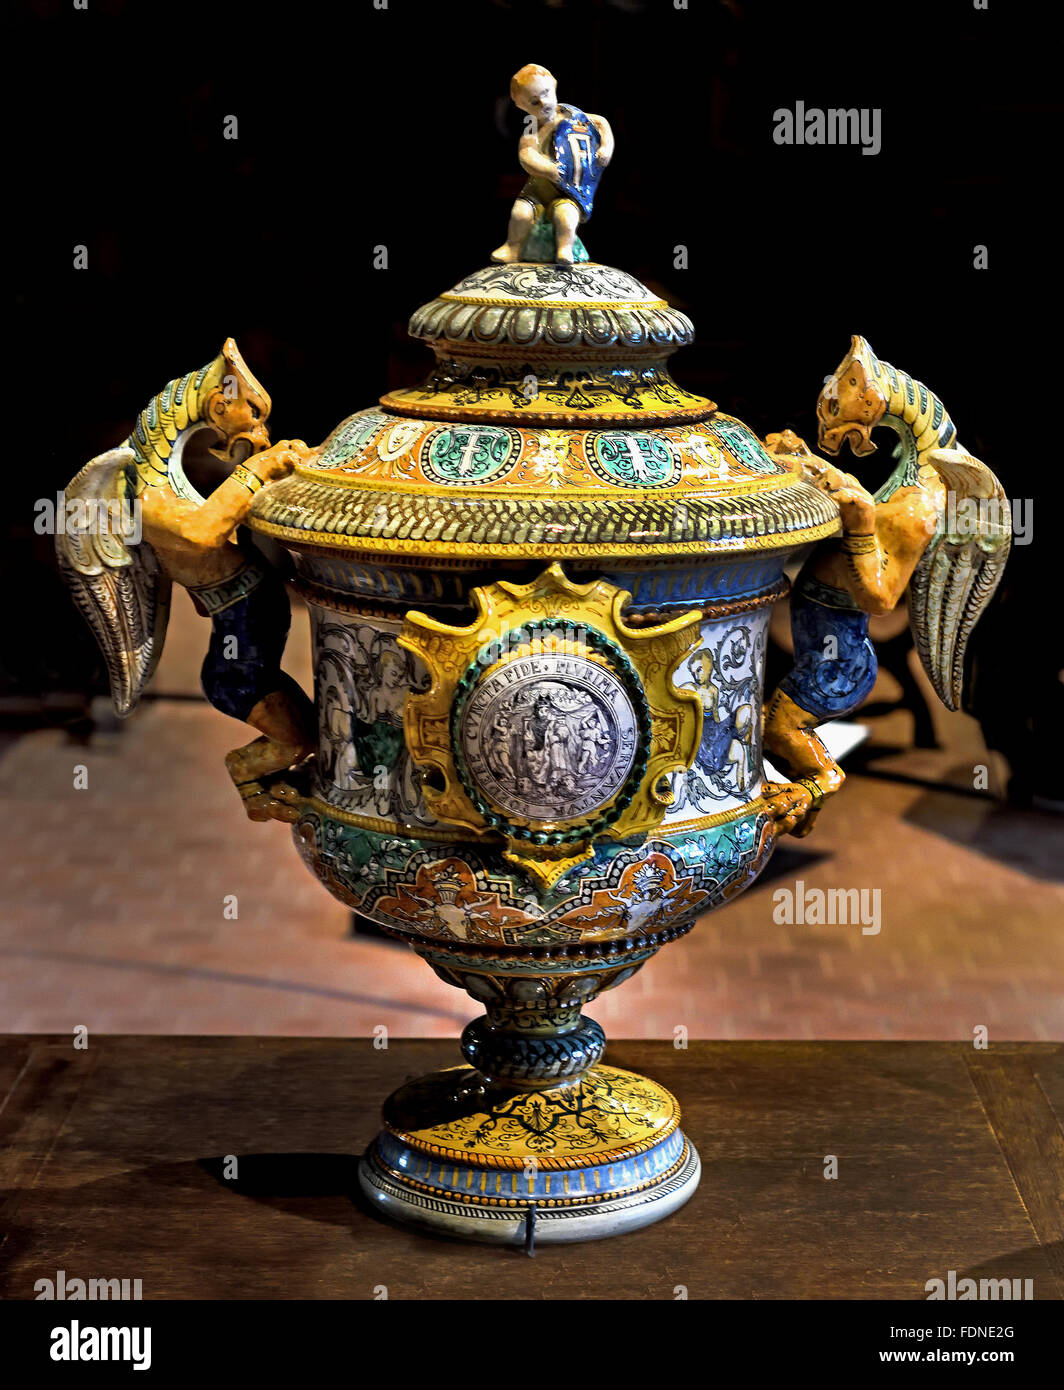 Covered vase with two Handels Ulysse Besnard 1826-1899 Faience Blois France French ( Chateau de Blois ) - Stock Image